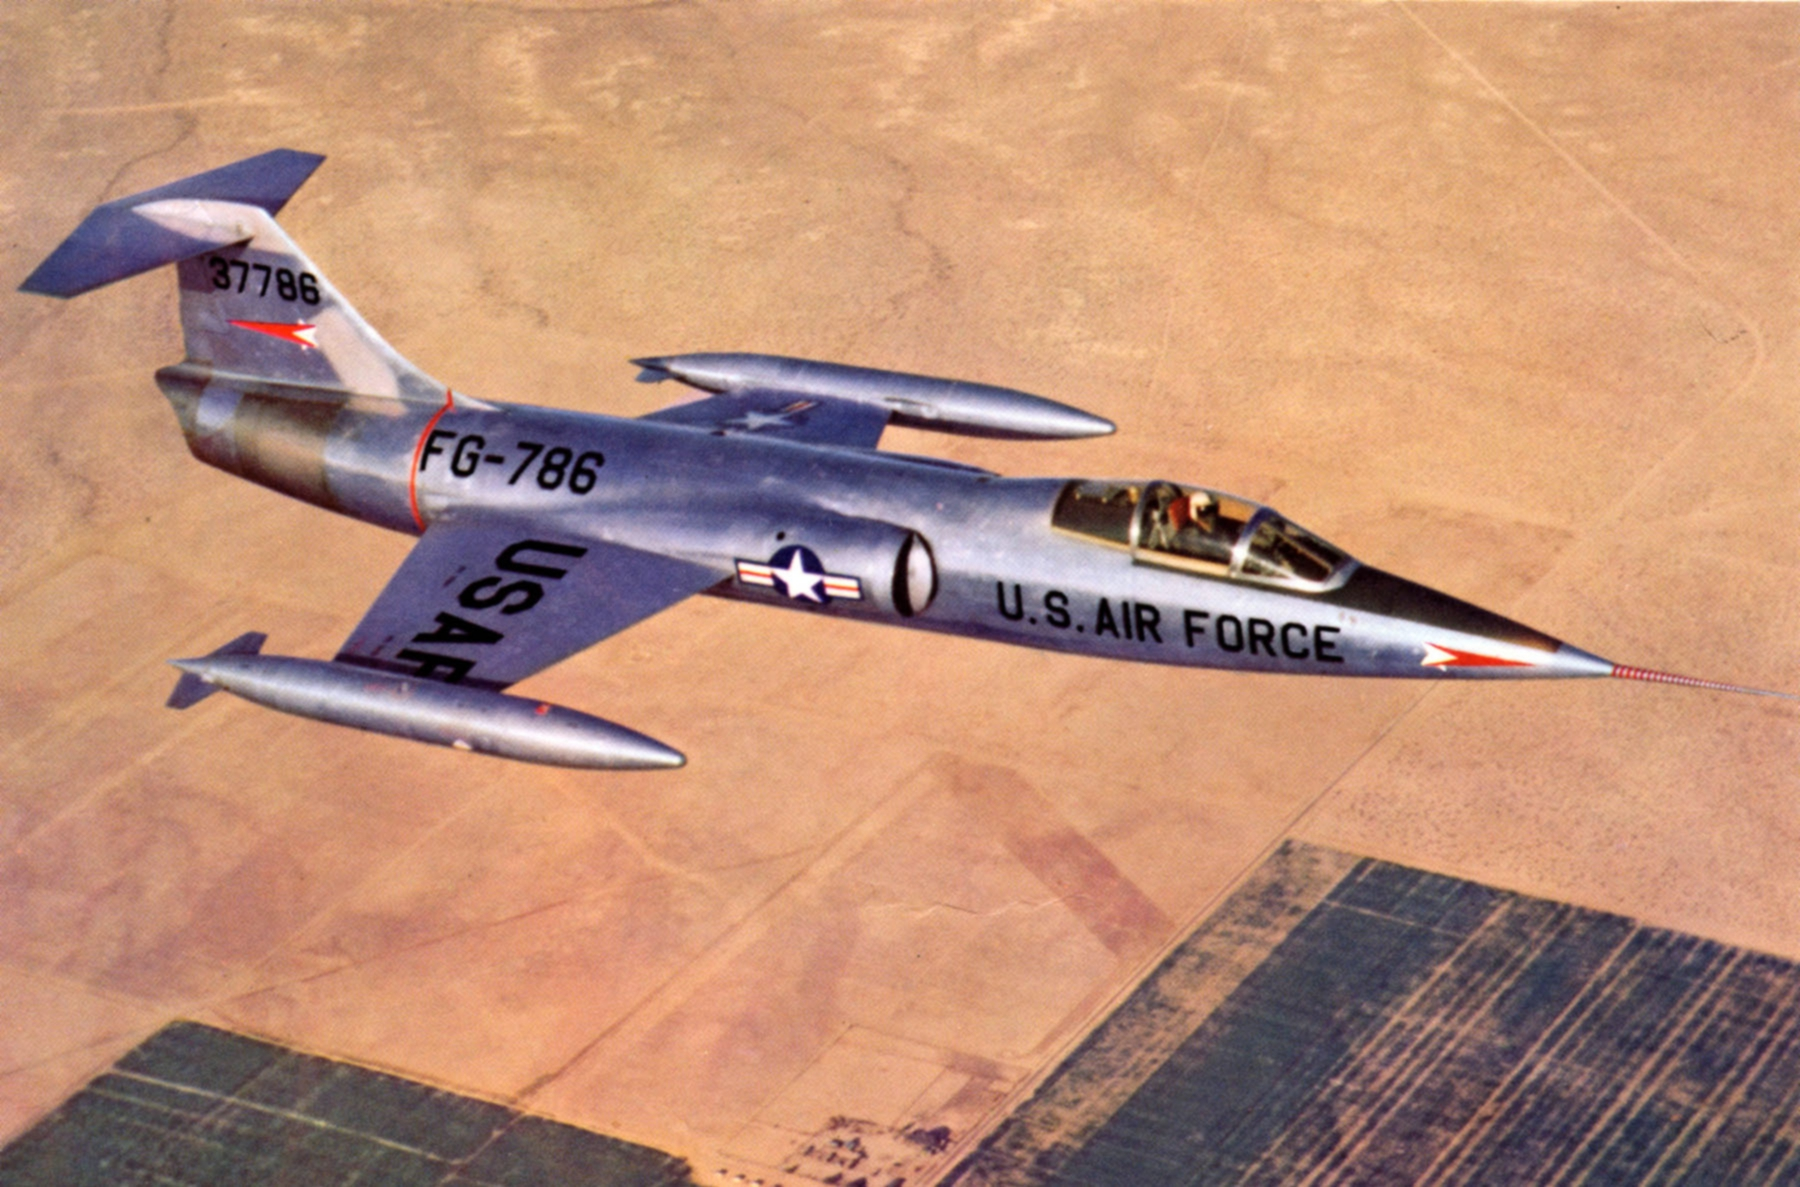 The first XF-104, serial number 53-7786, on a test flight near Edwards AFB. This aircraft crashed in 1957 following flutter problems which ripped the tail from the fuselage. The pilot, Bill Park, ejected safely. (image via Wikipedia)